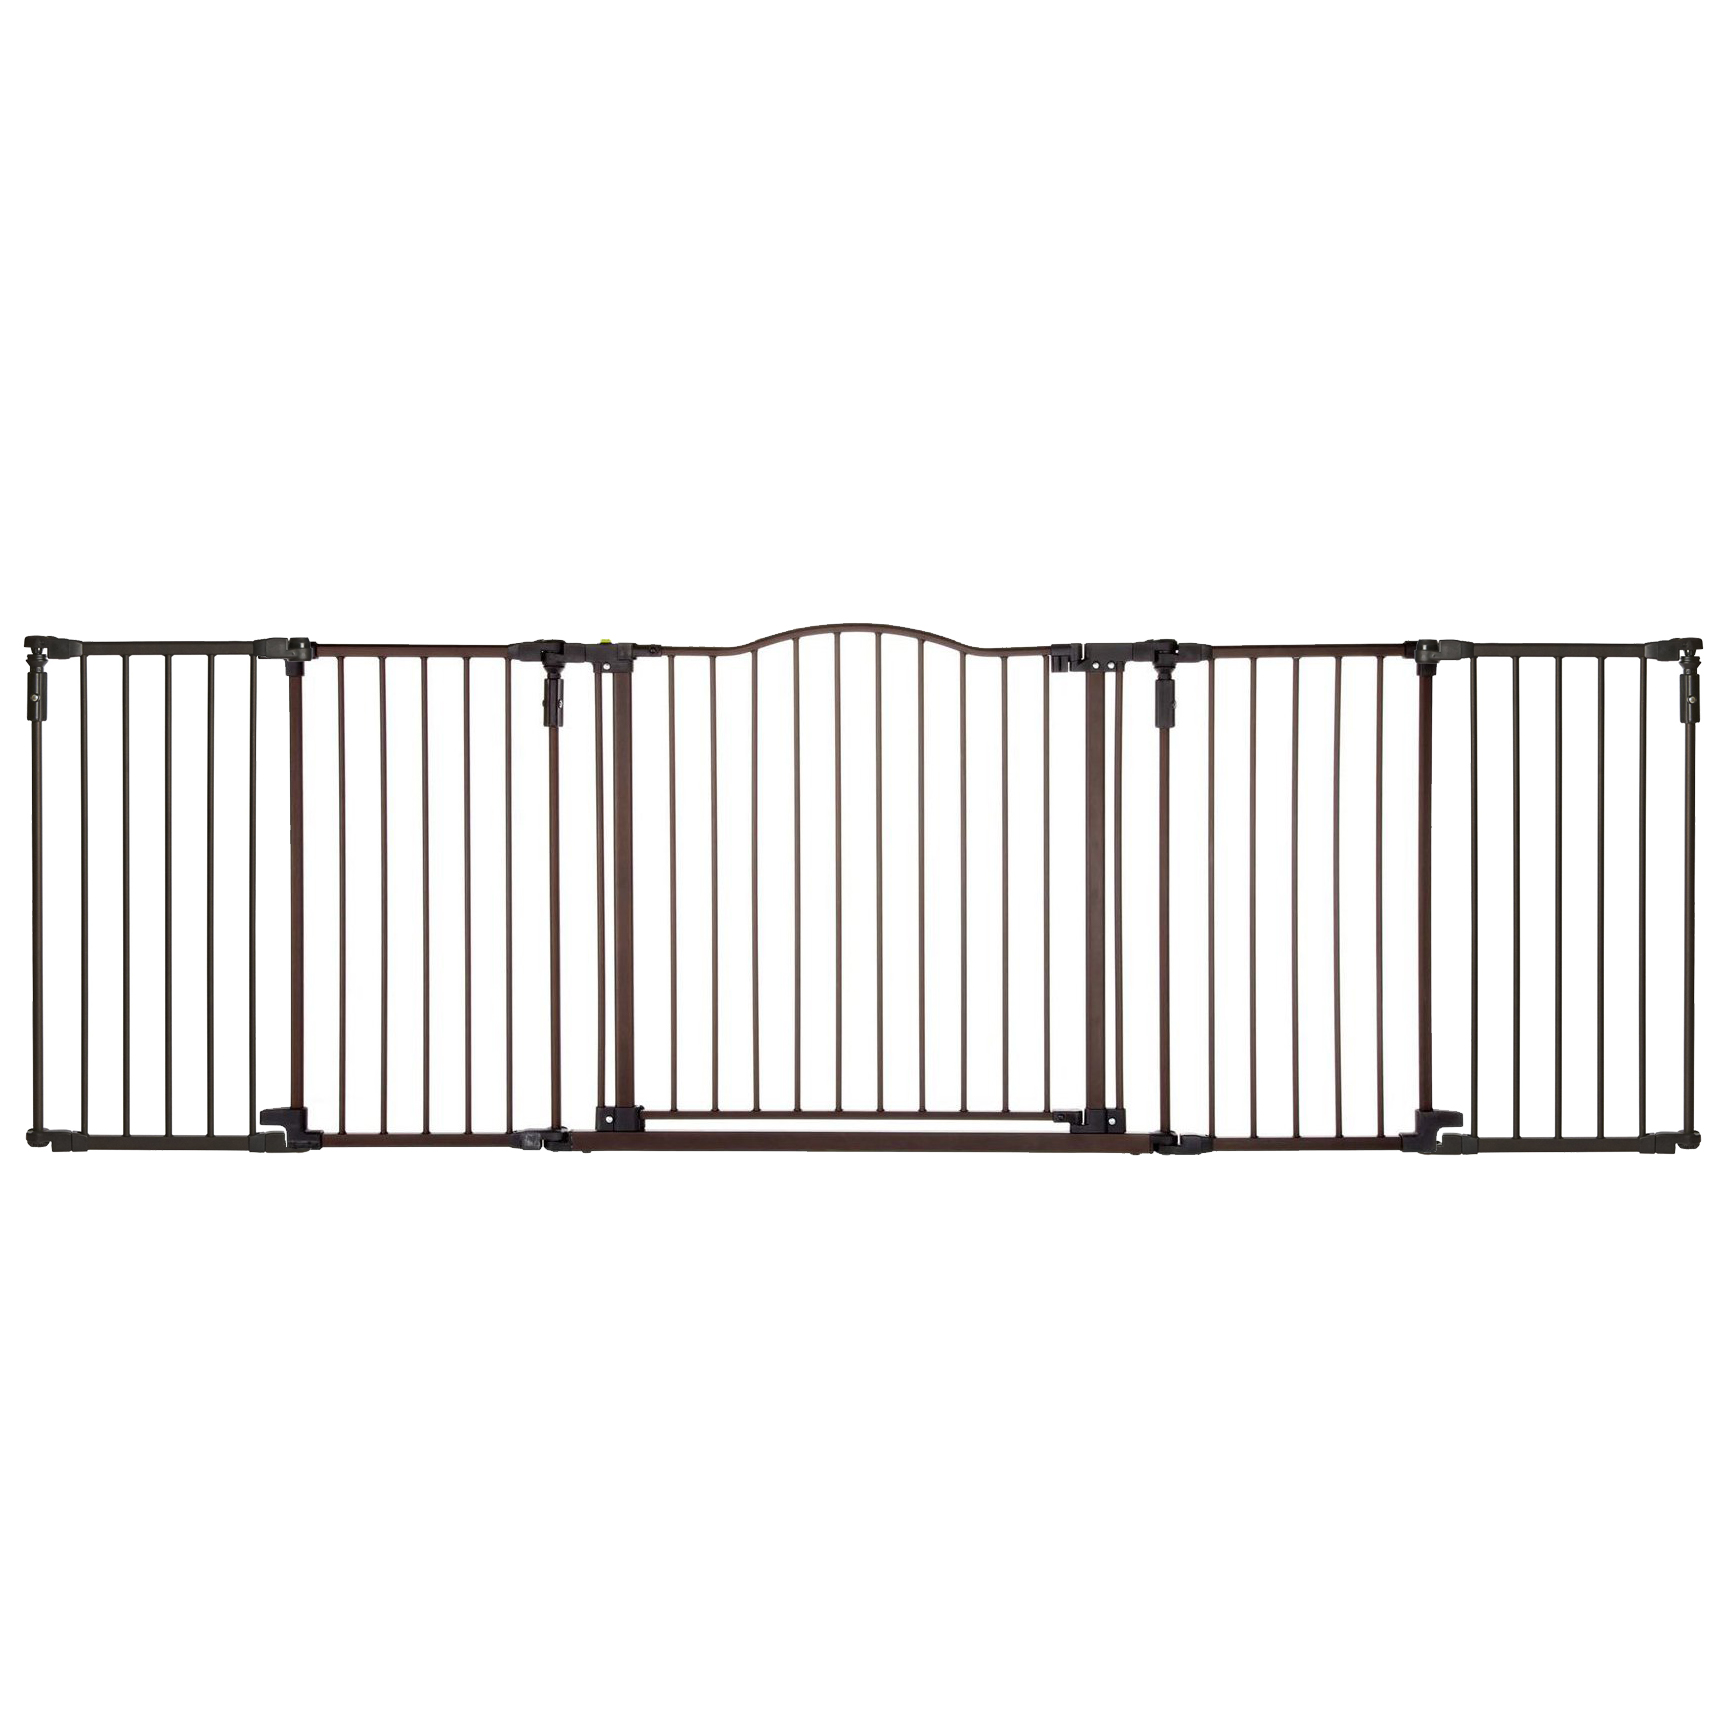 "North States Decor 38-71"" Wide Metal Gate & 15"" Bronze Extension Piece (2 Pack)"